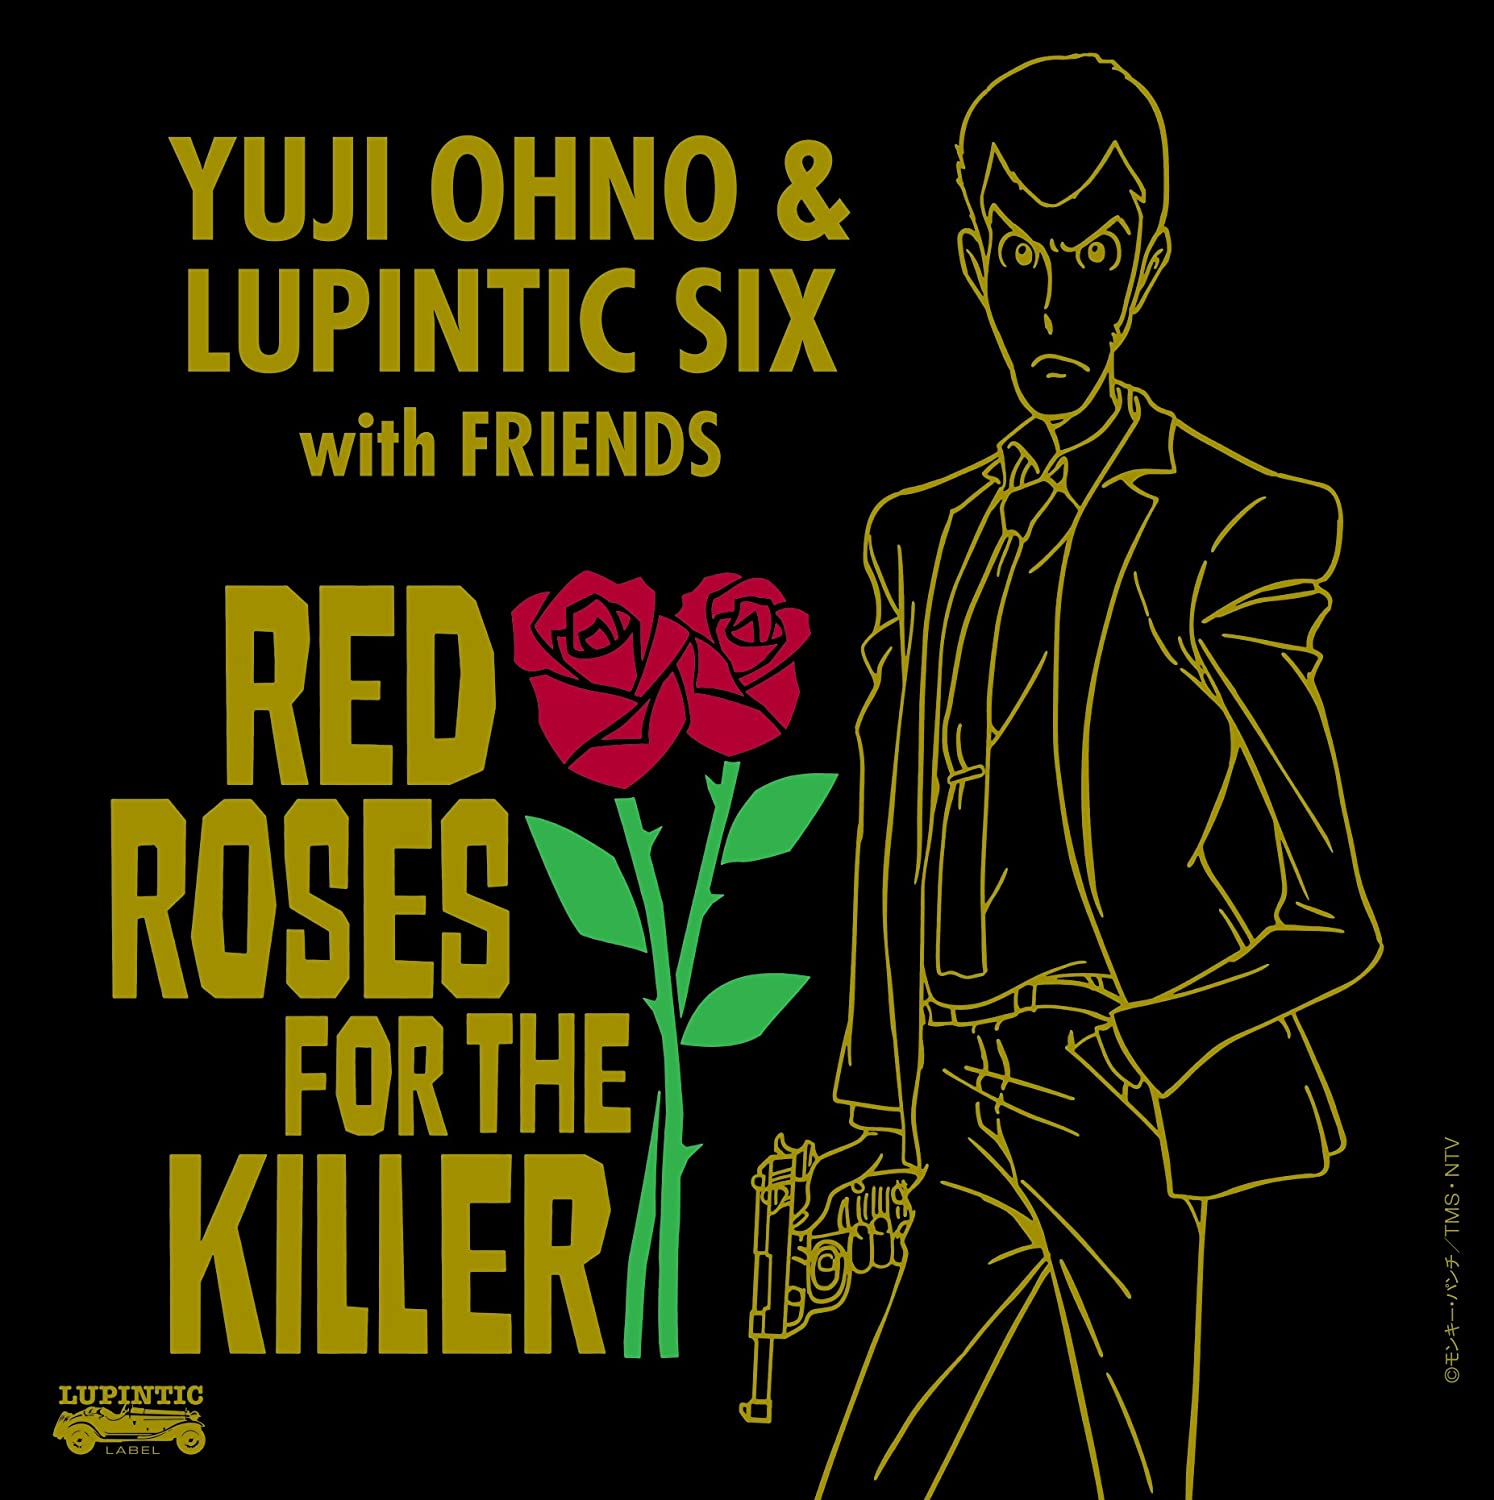 【动漫音乐】[170621]『鲁邦三世 ルパン三世』「Yuji Ohno & Lupintic Six(大野雄二)」2nd Album「RED ROSES FOR THE KILLER」[320K] -  - ACG17.COM